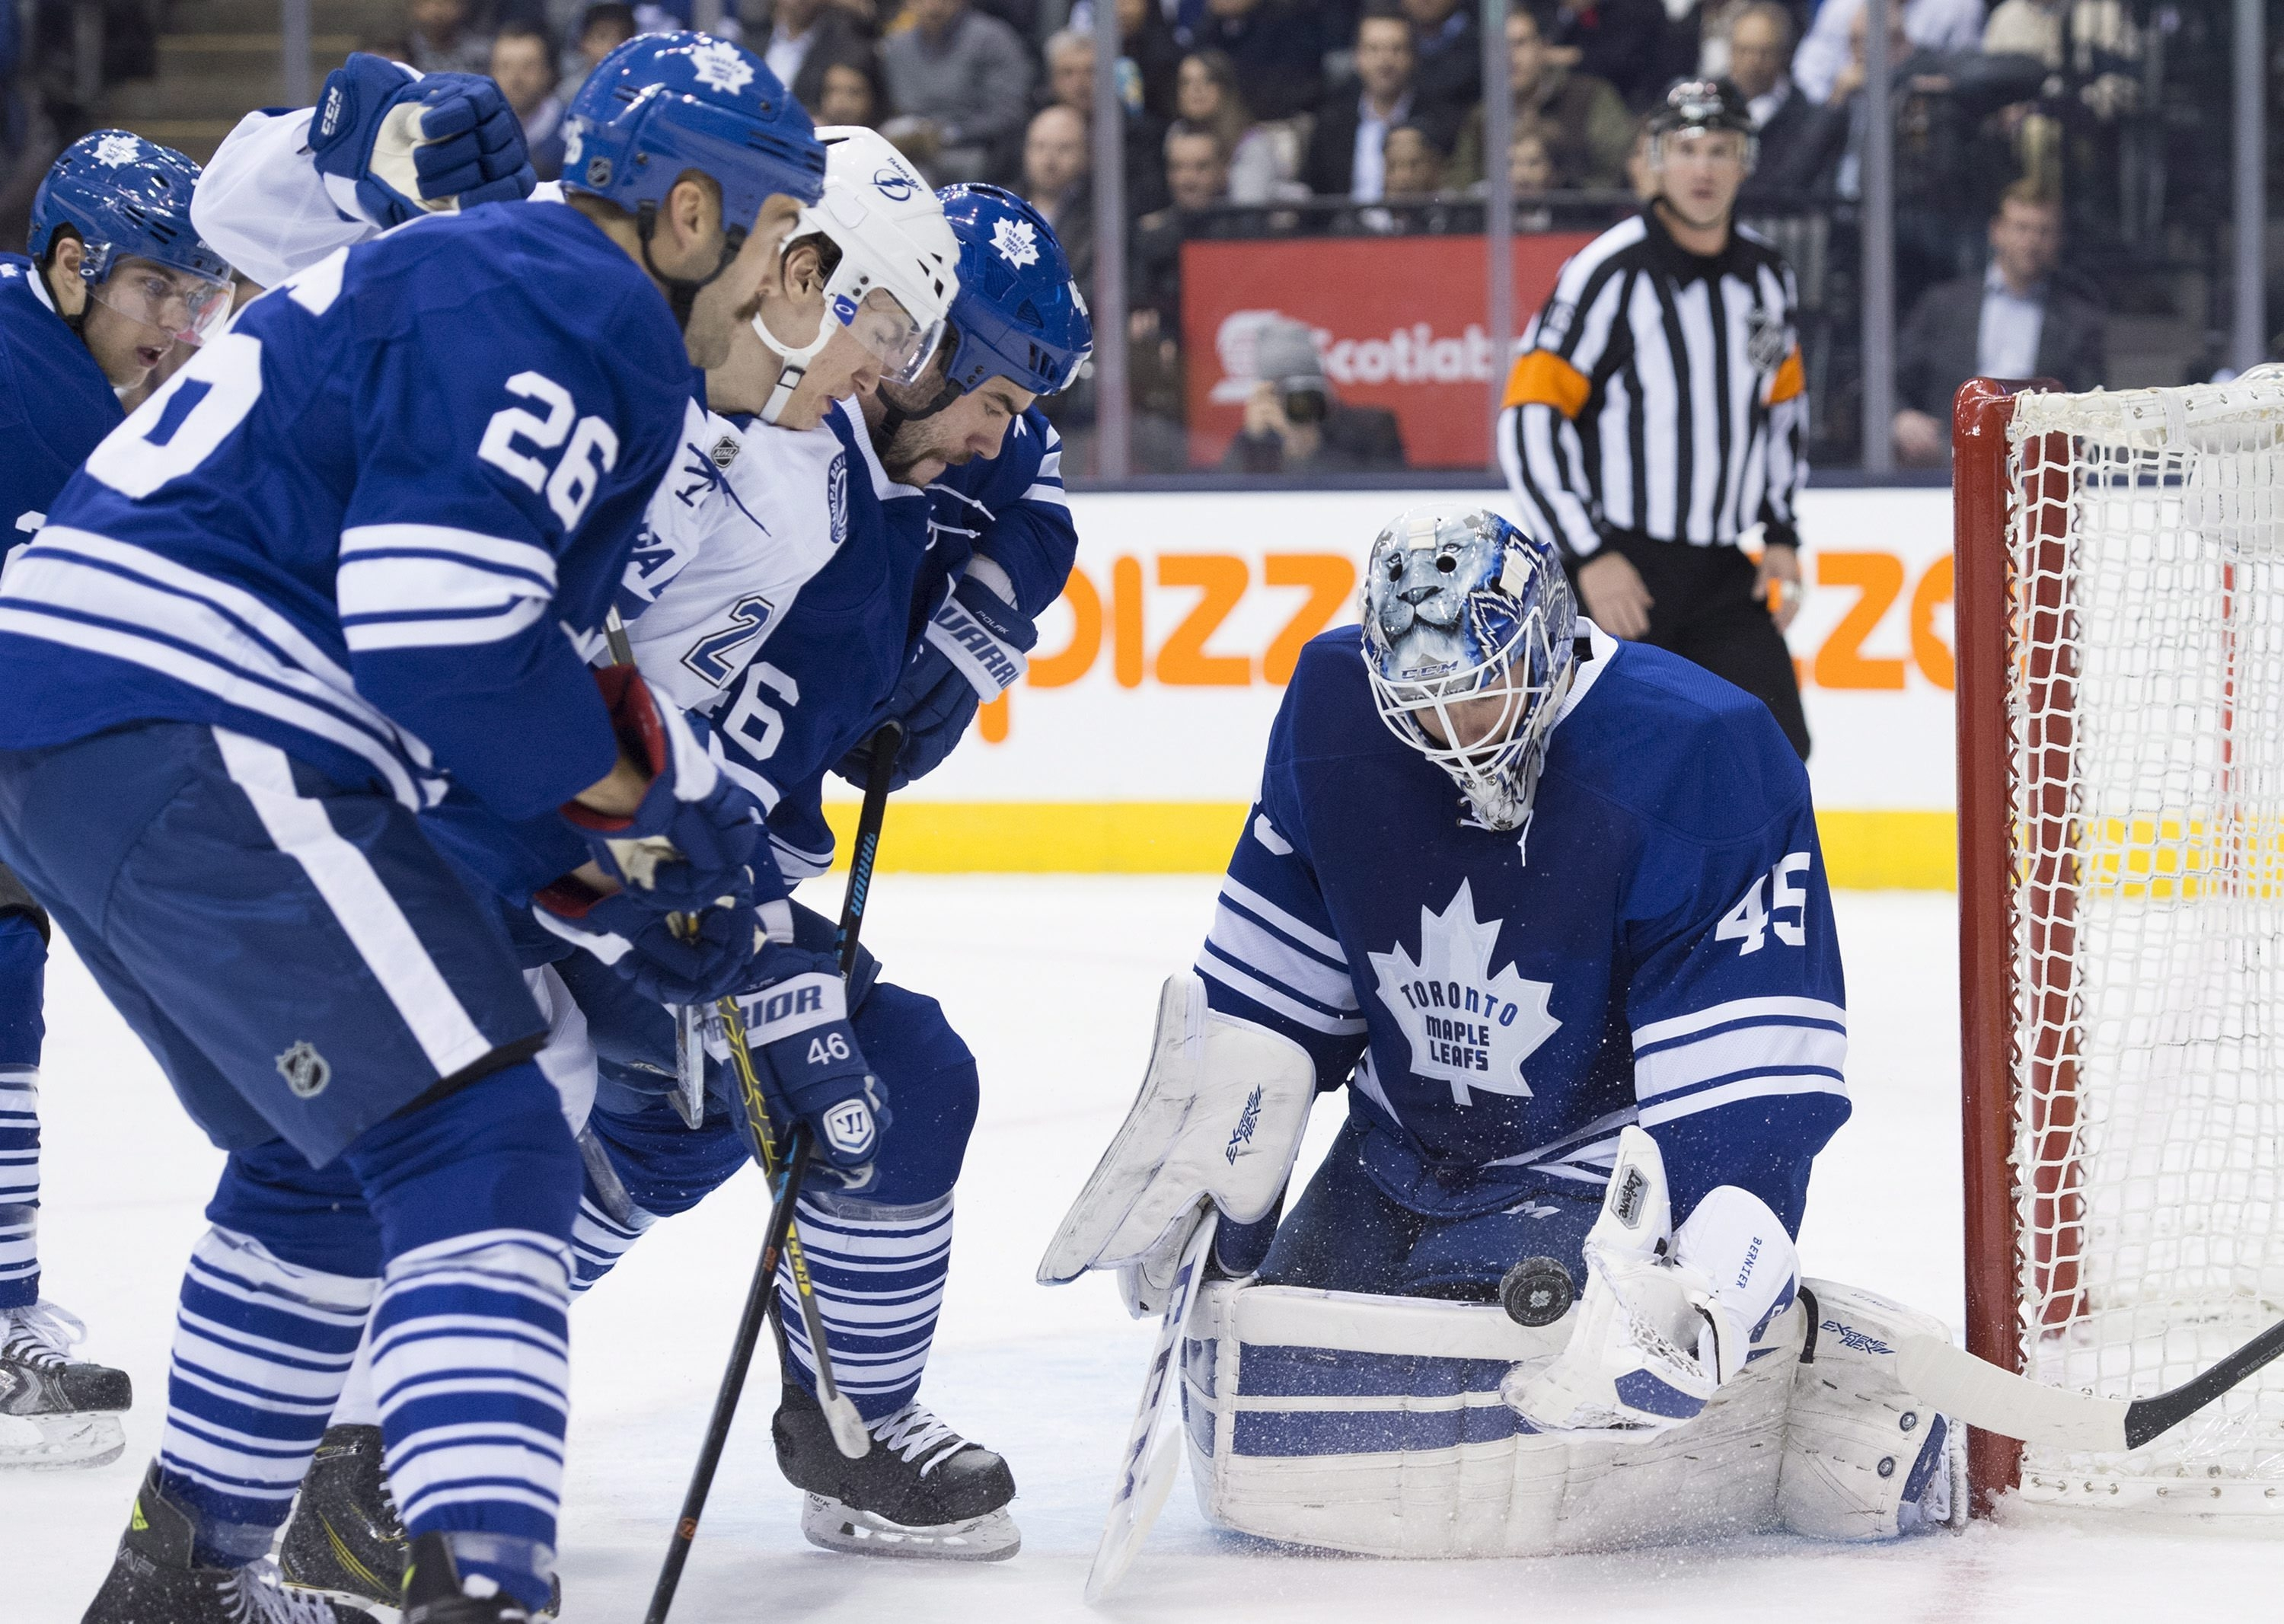 Rogers Communications' 12-year contract to cover games of the Toronto Maple Leafs and Canada's other NHL teams includes GamePlus feature.